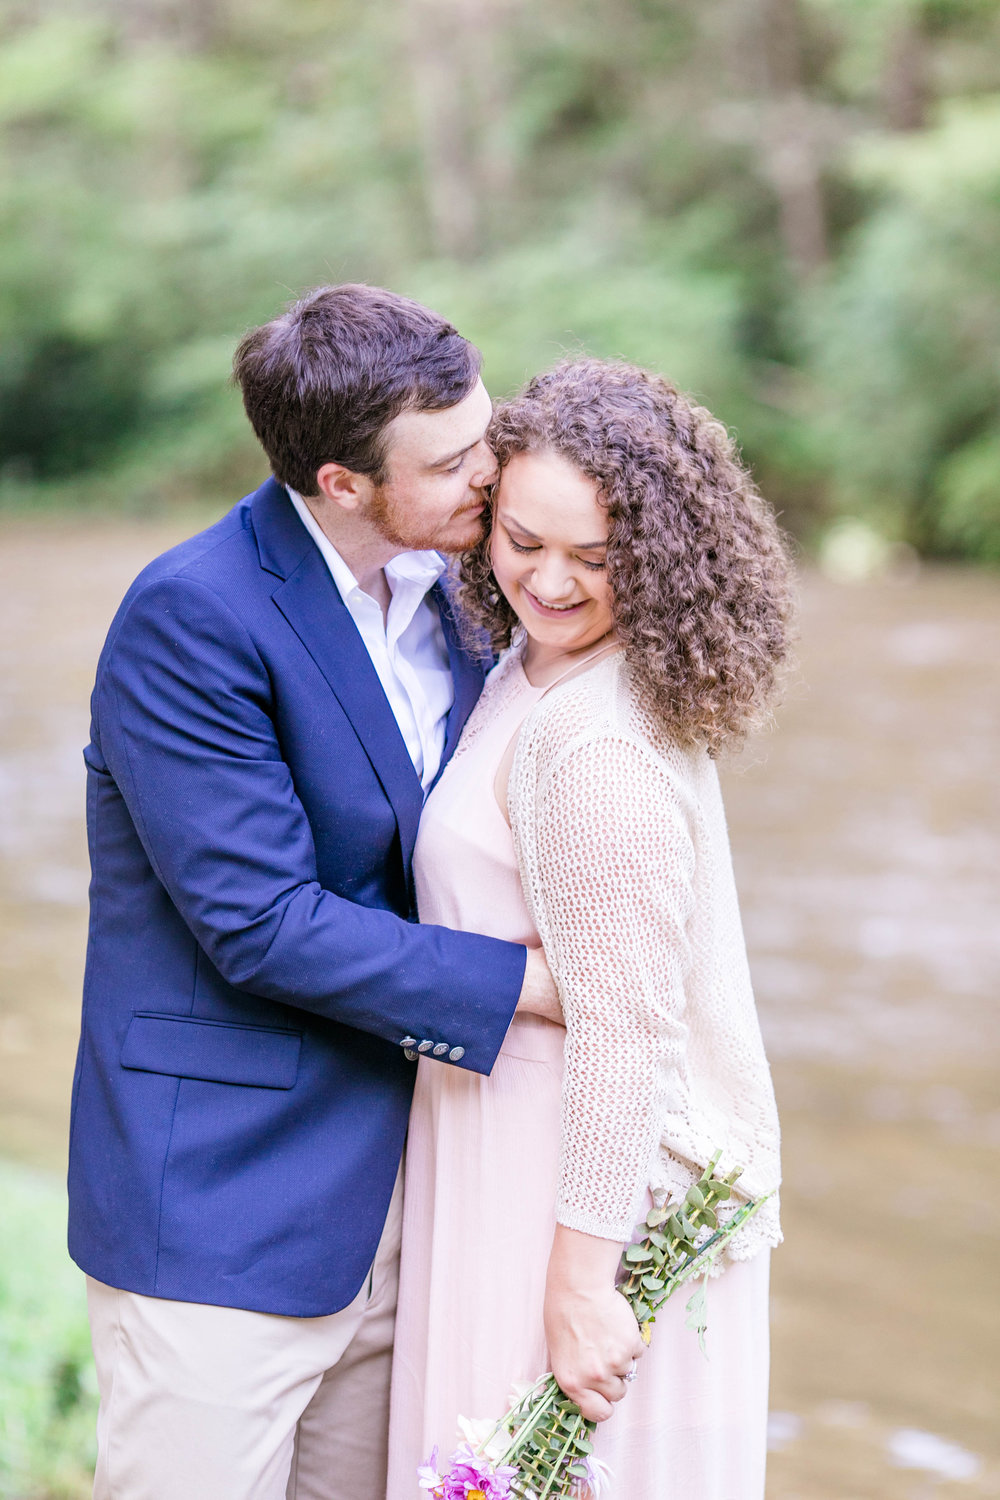 East Tennessee engagement session, wedding photographer, portrait photography, bride and groom, Doe River Gorge, wedding venue, Tri Cities wedding photographer, Johnson City, natural poses